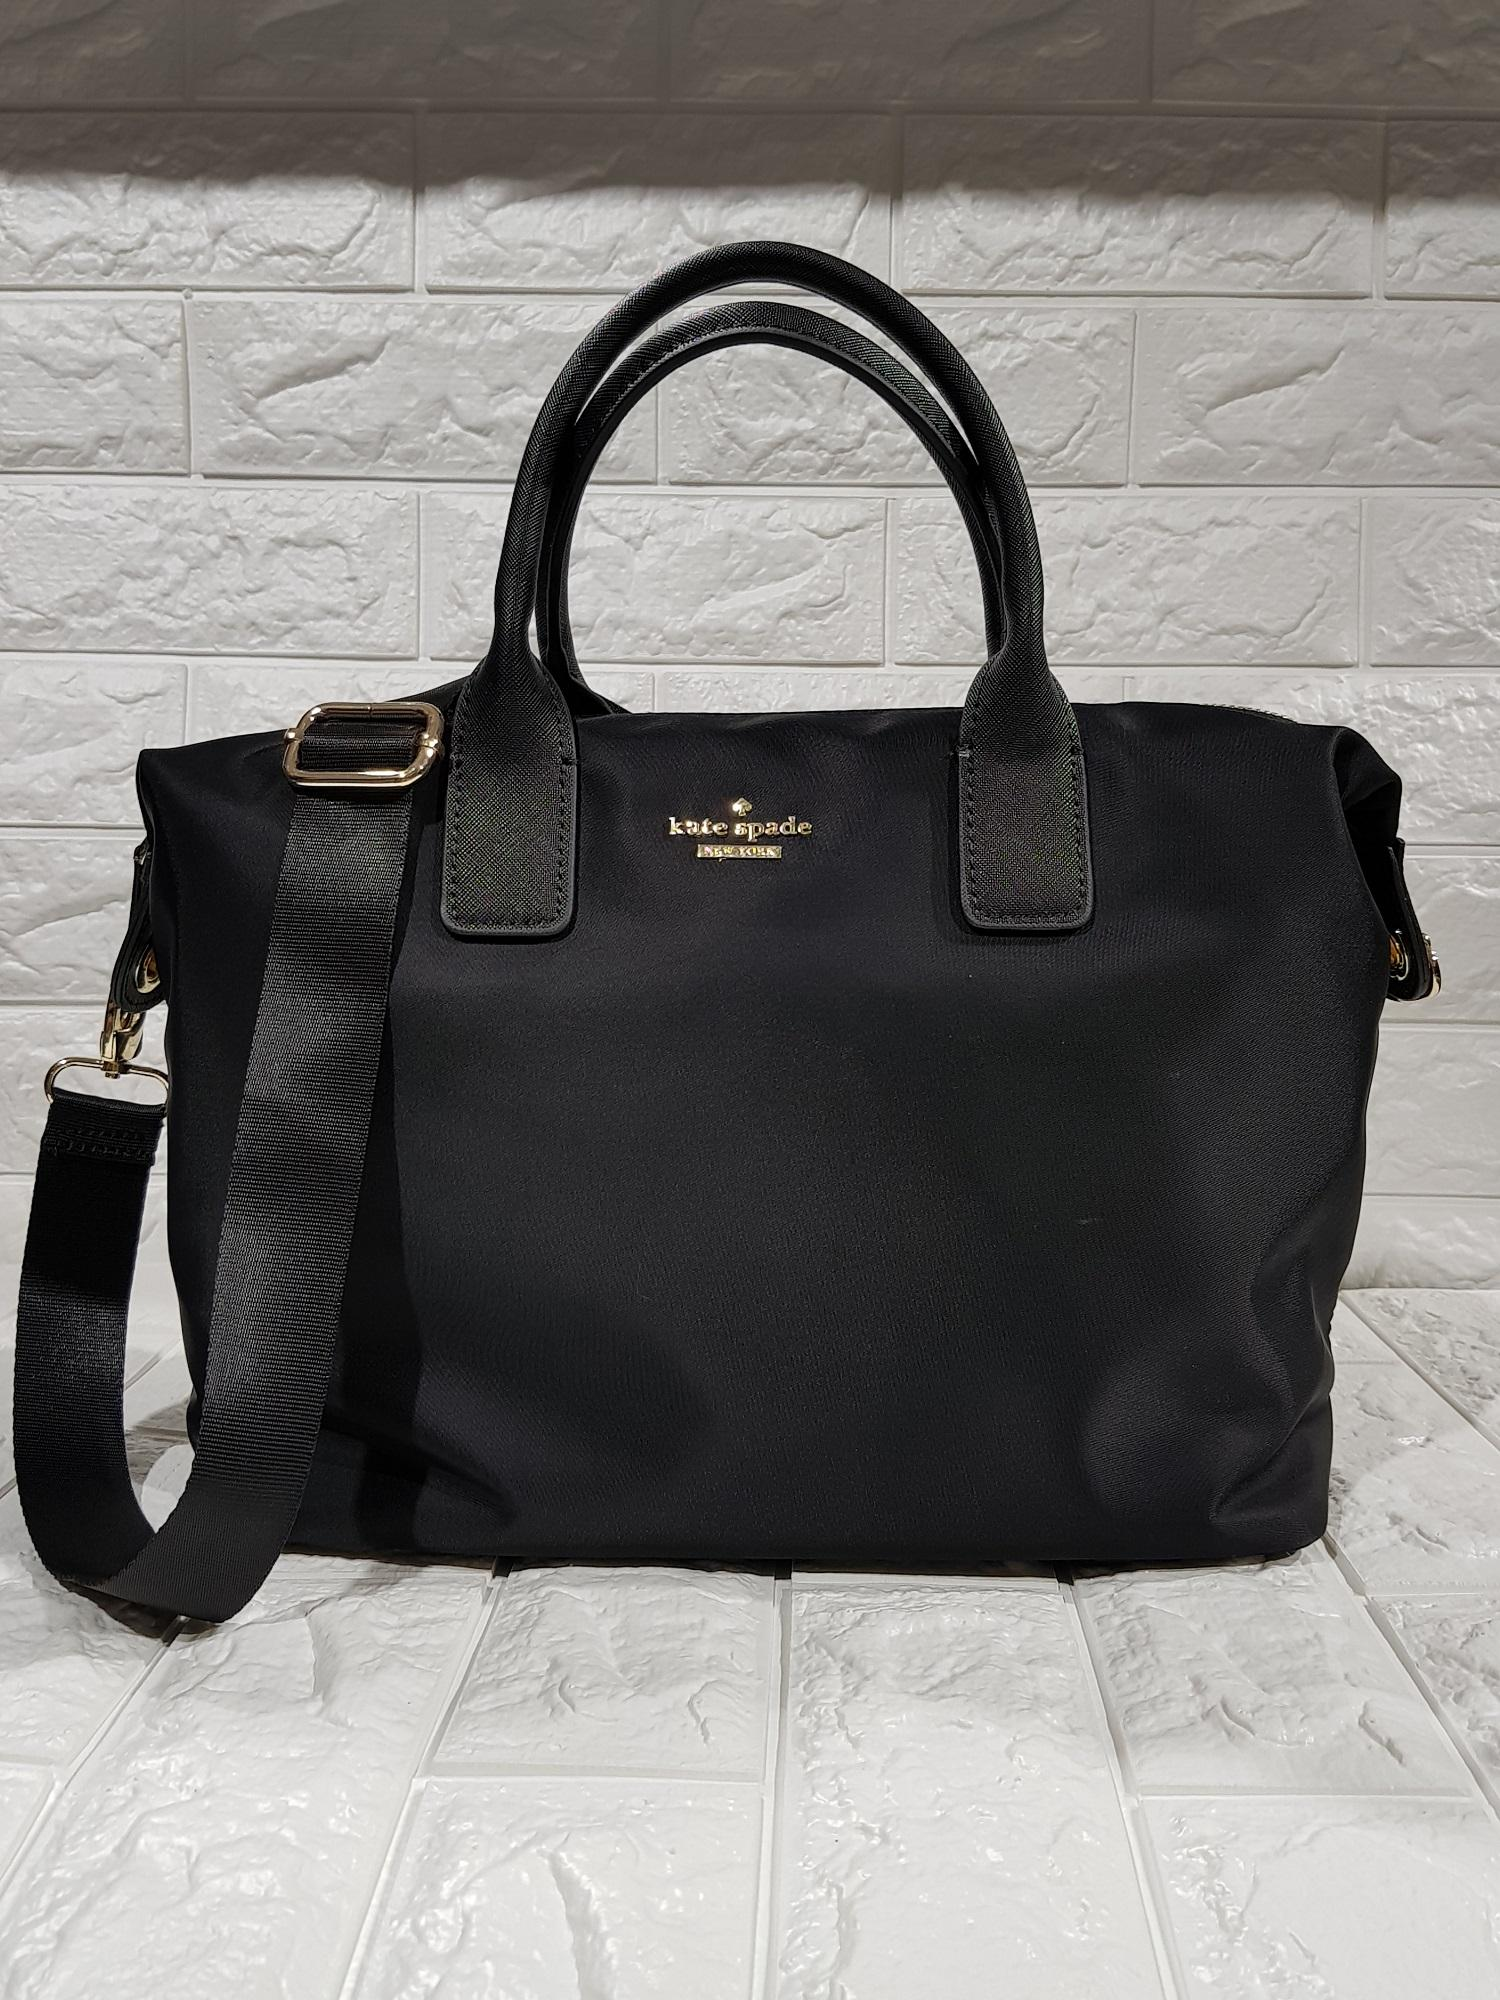 a15f8d5e8d47 Kate Spade Philippines - Kate Spade Bag for Women for sale - prices    reviews